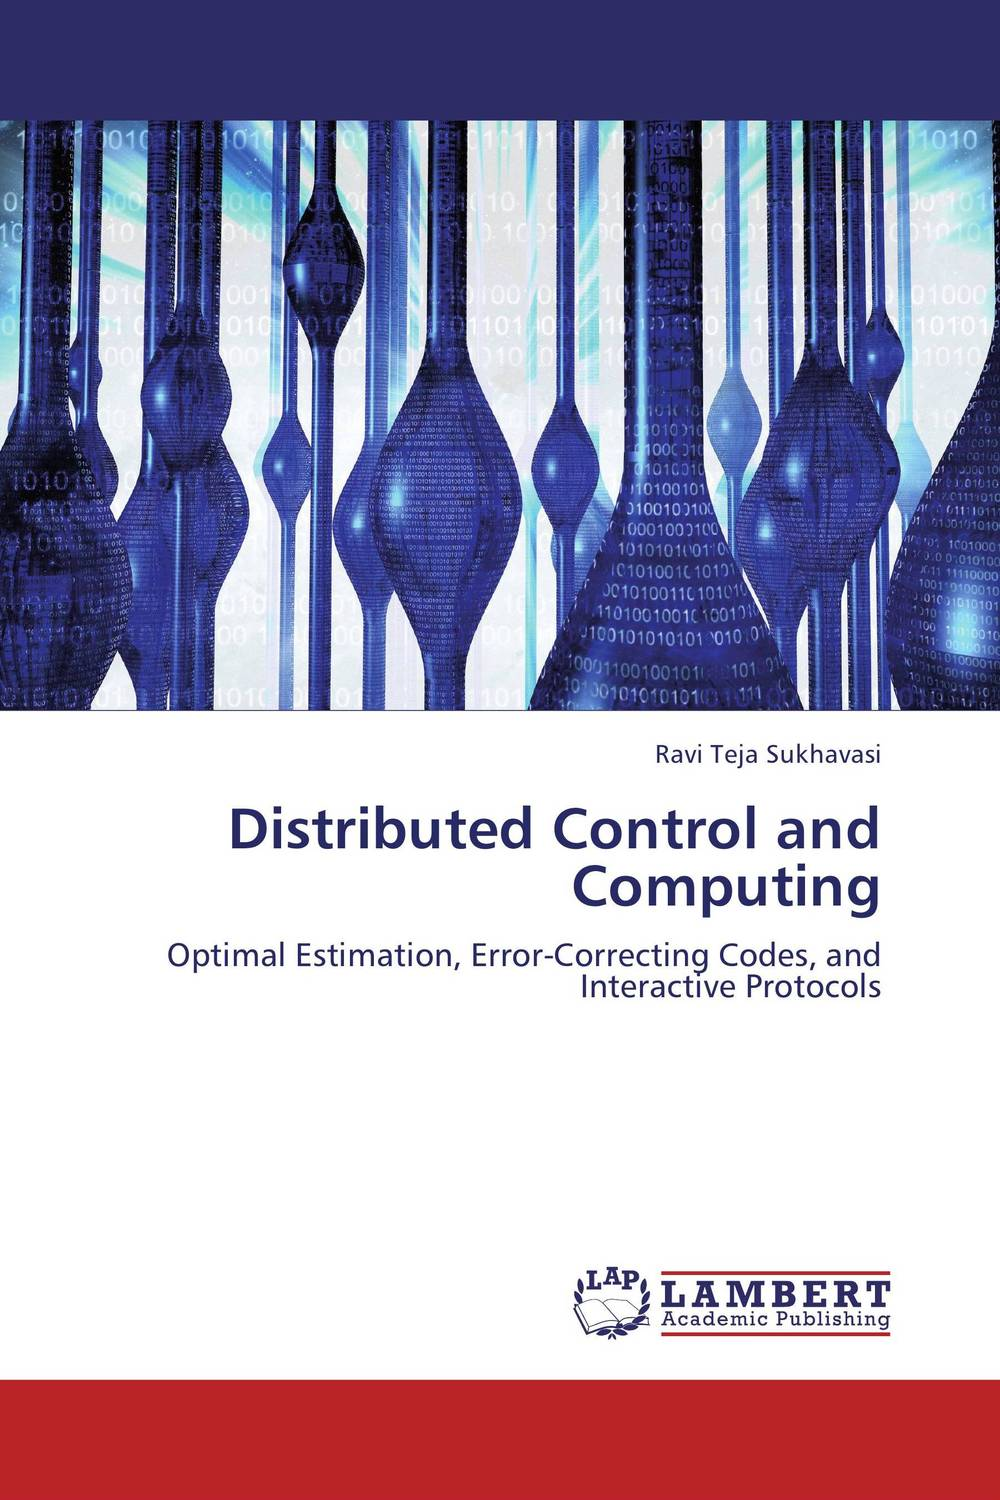 Distributed Control and Computing riaz ahamed distributed computing systems